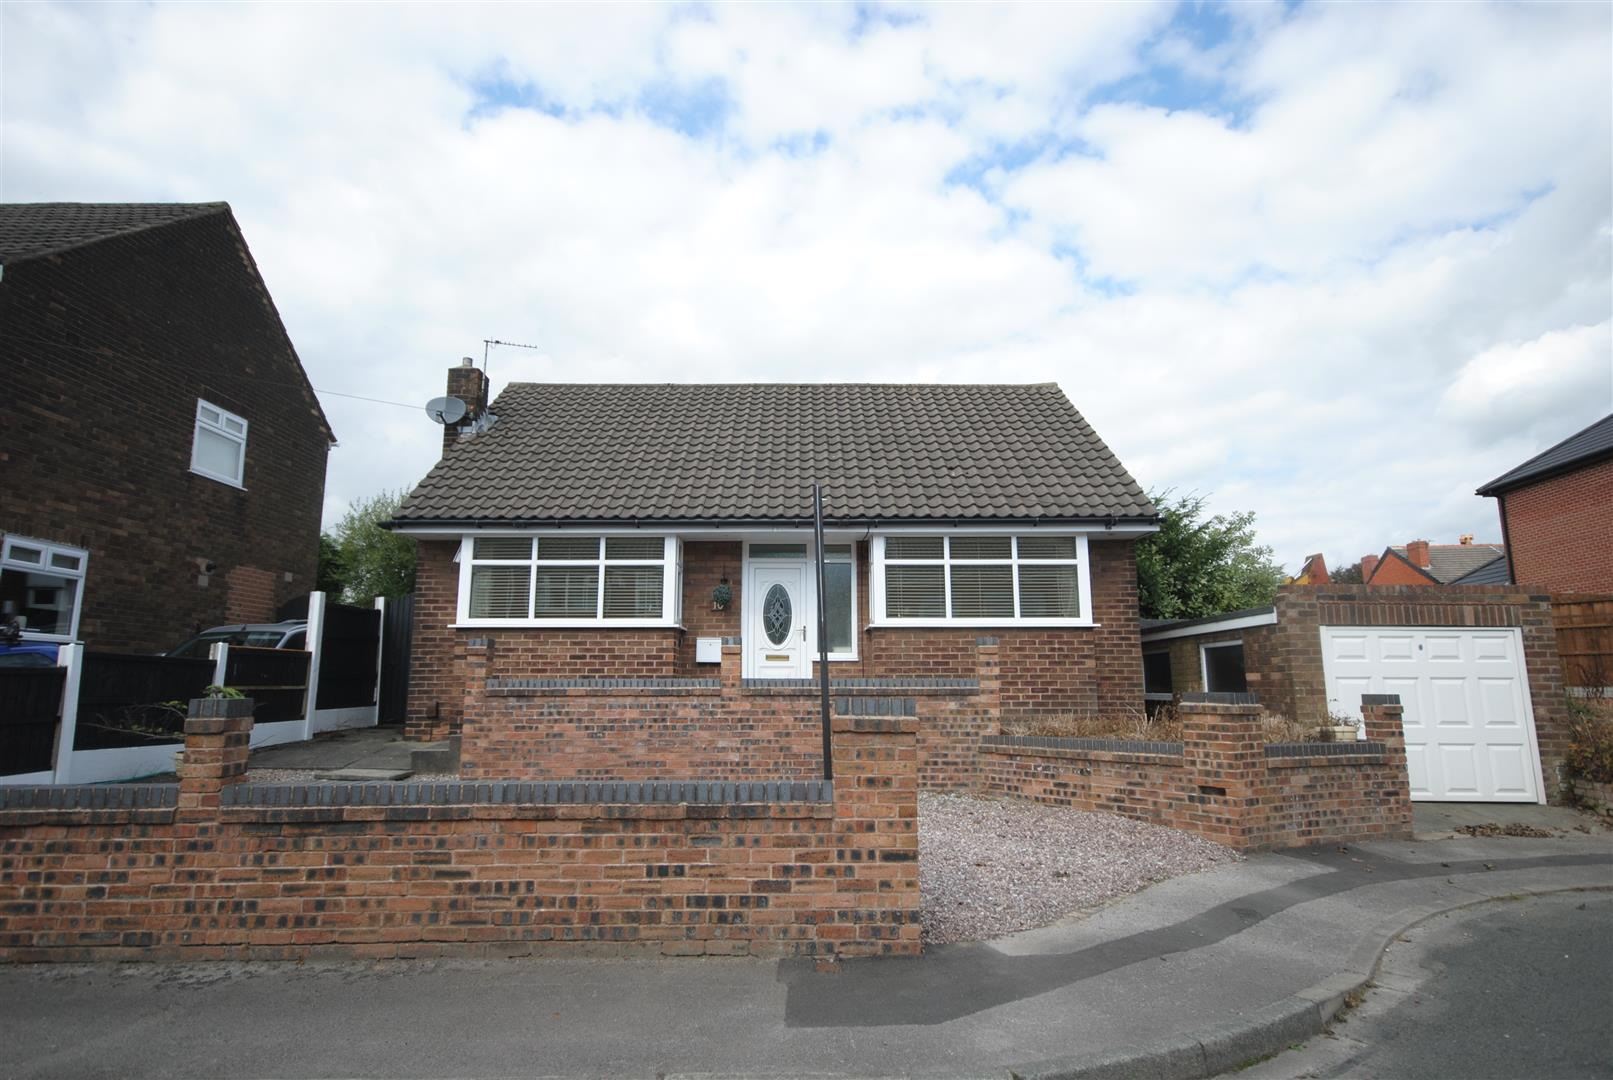 2 Bedrooms Detached Bungalow for sale in Stroud Close, Wigan